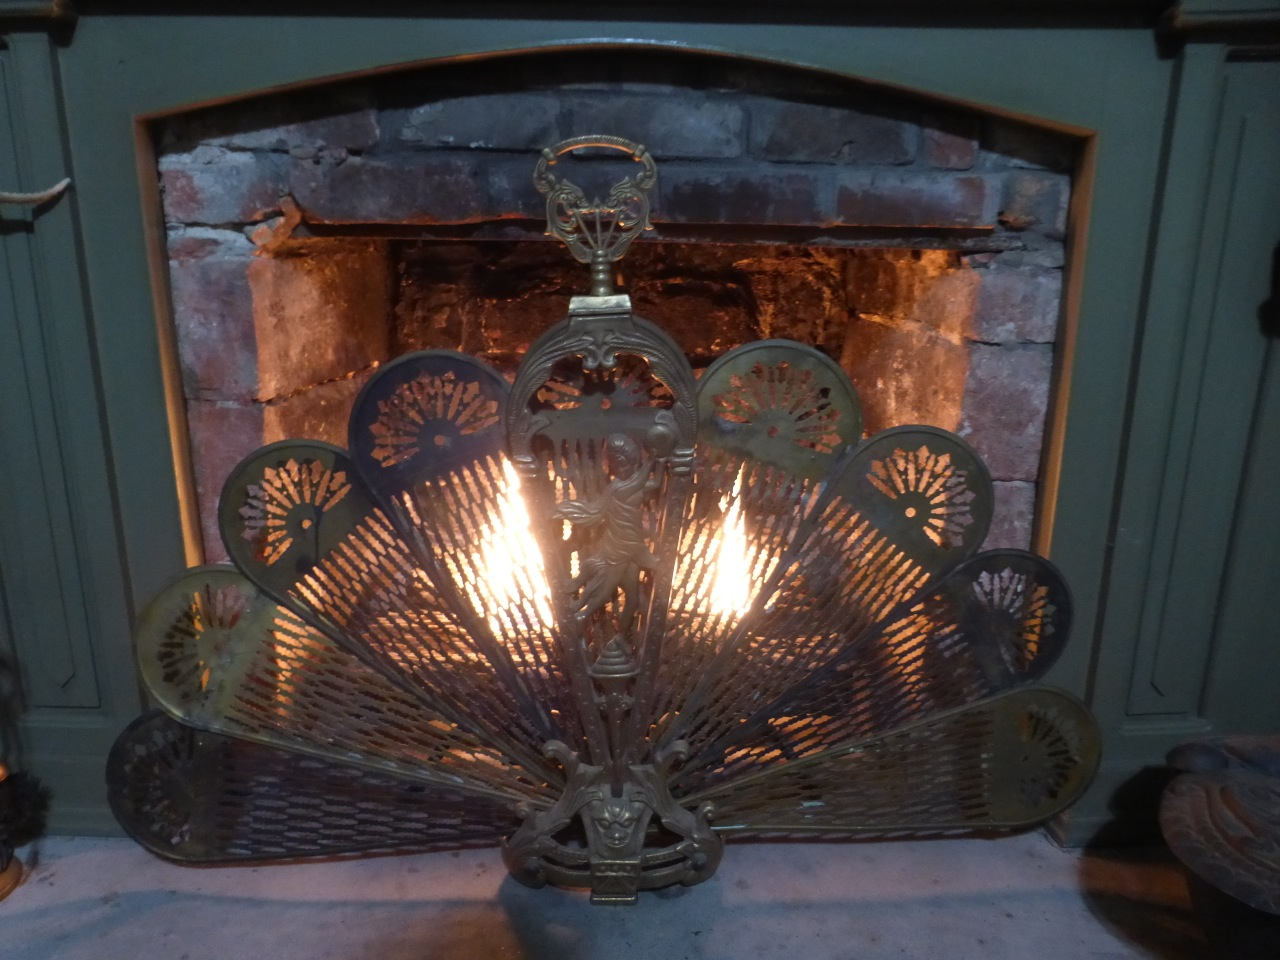 Lovely Fireplace in the Mulberry Lavender Farm B&B